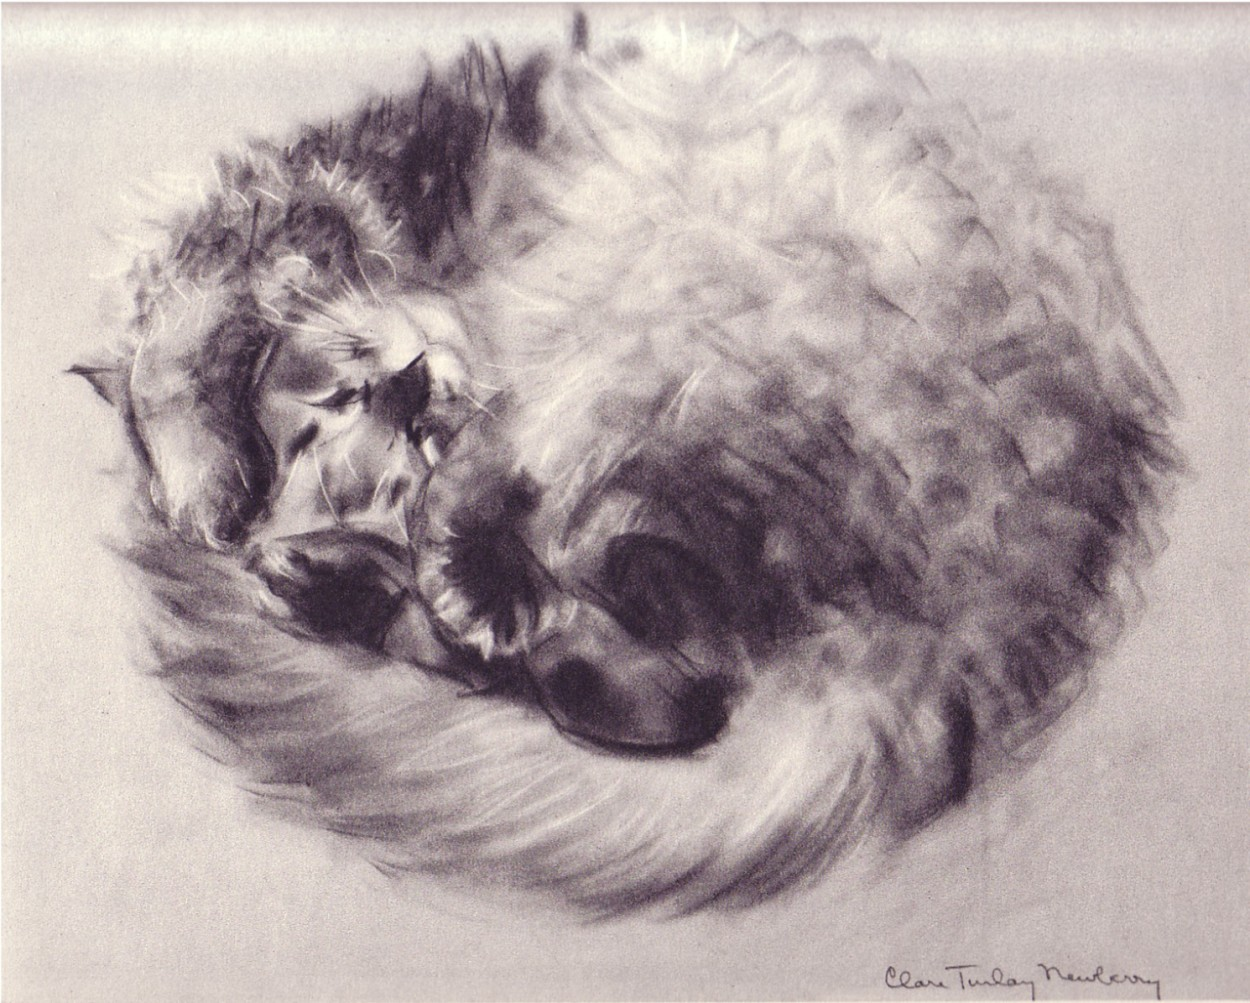 C. Turlay Newberry, Ball of Fur